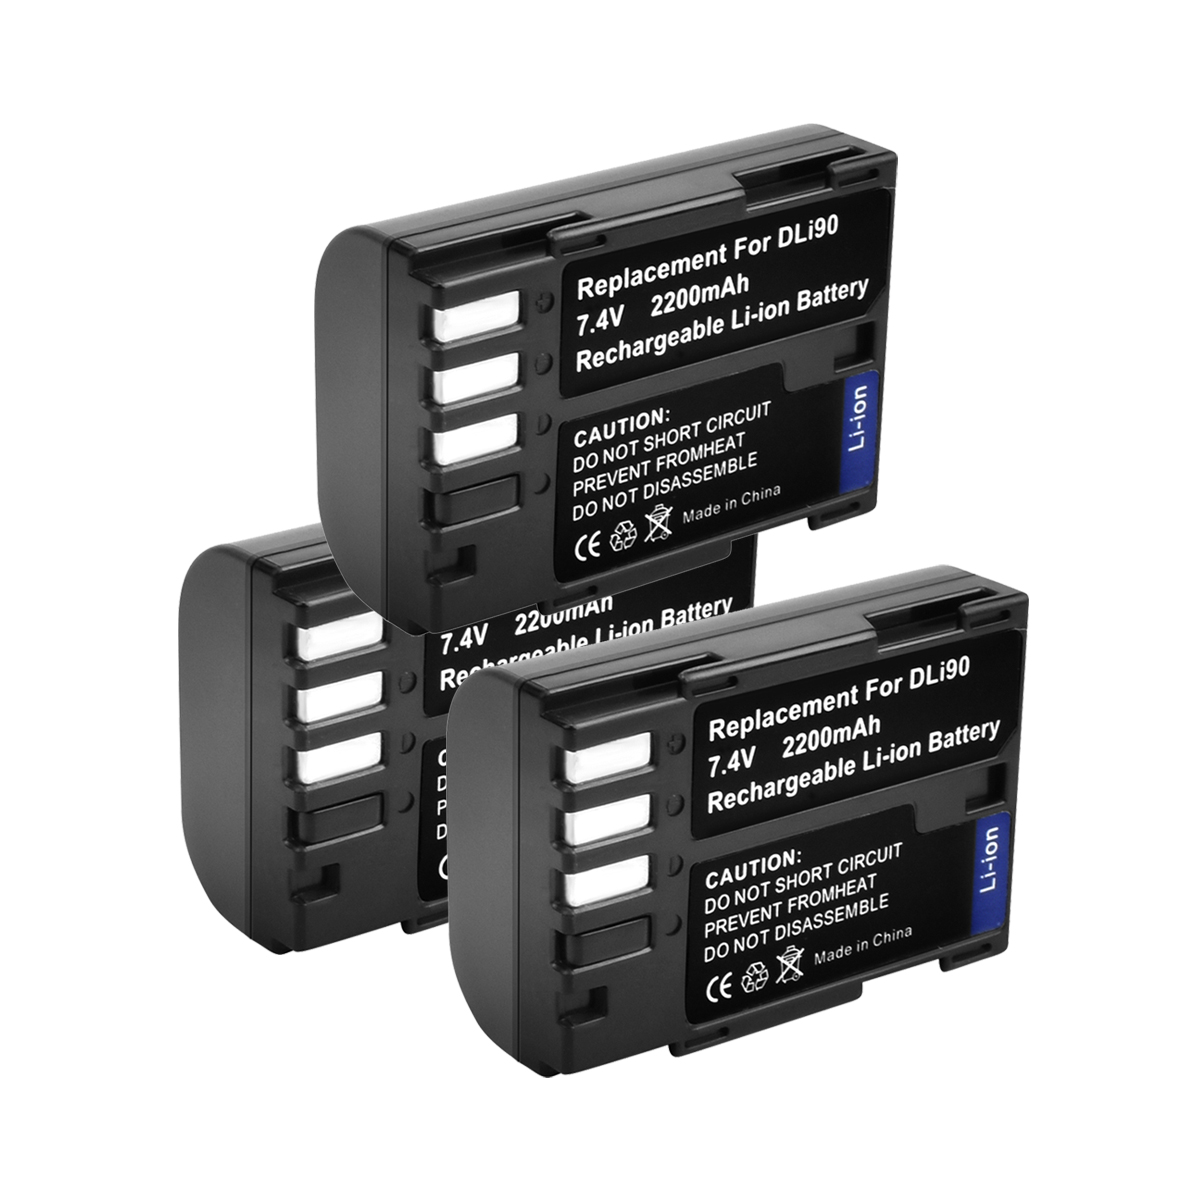 3pcs 7.4V 2200mAh akku D-LI90 DLI90 D LI90 Digital Camera Battery For PENTAX K-7 K-7D K-5 K-5 II 645D K01 K-3 K-3 II 645Z L new 2 step vertical power shutter battery handle grip for pentax k 7 k7 k 5 k5 slr camera as d bg4 dbg4 1 x d li90 car charger